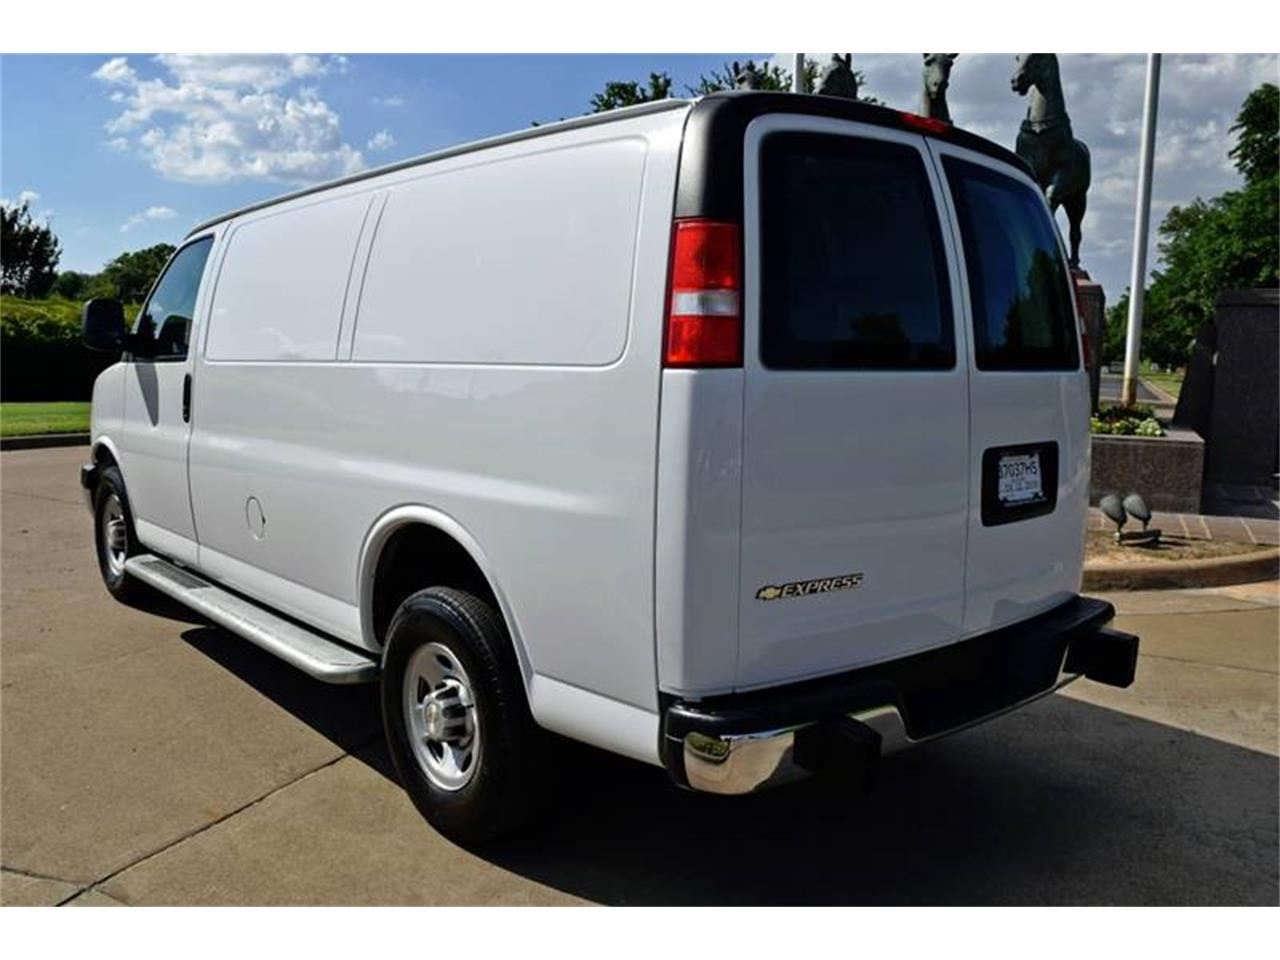 2018 Chevrolet Express (CC-1218780) for sale in Fort Worth, Texas